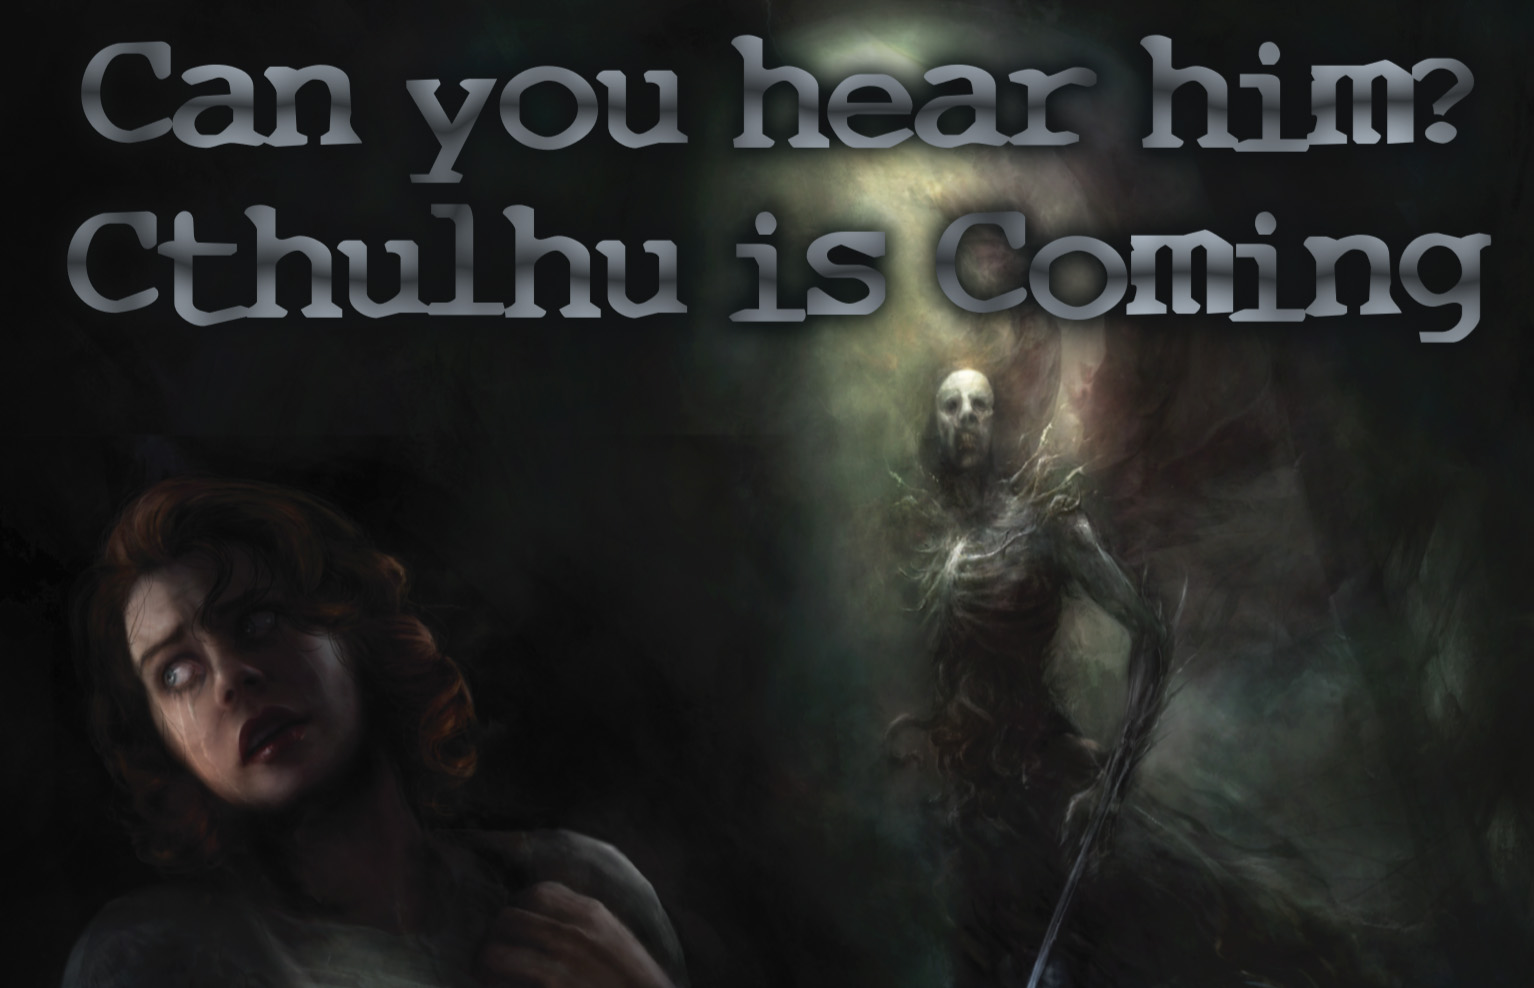 Cthulhu is coming